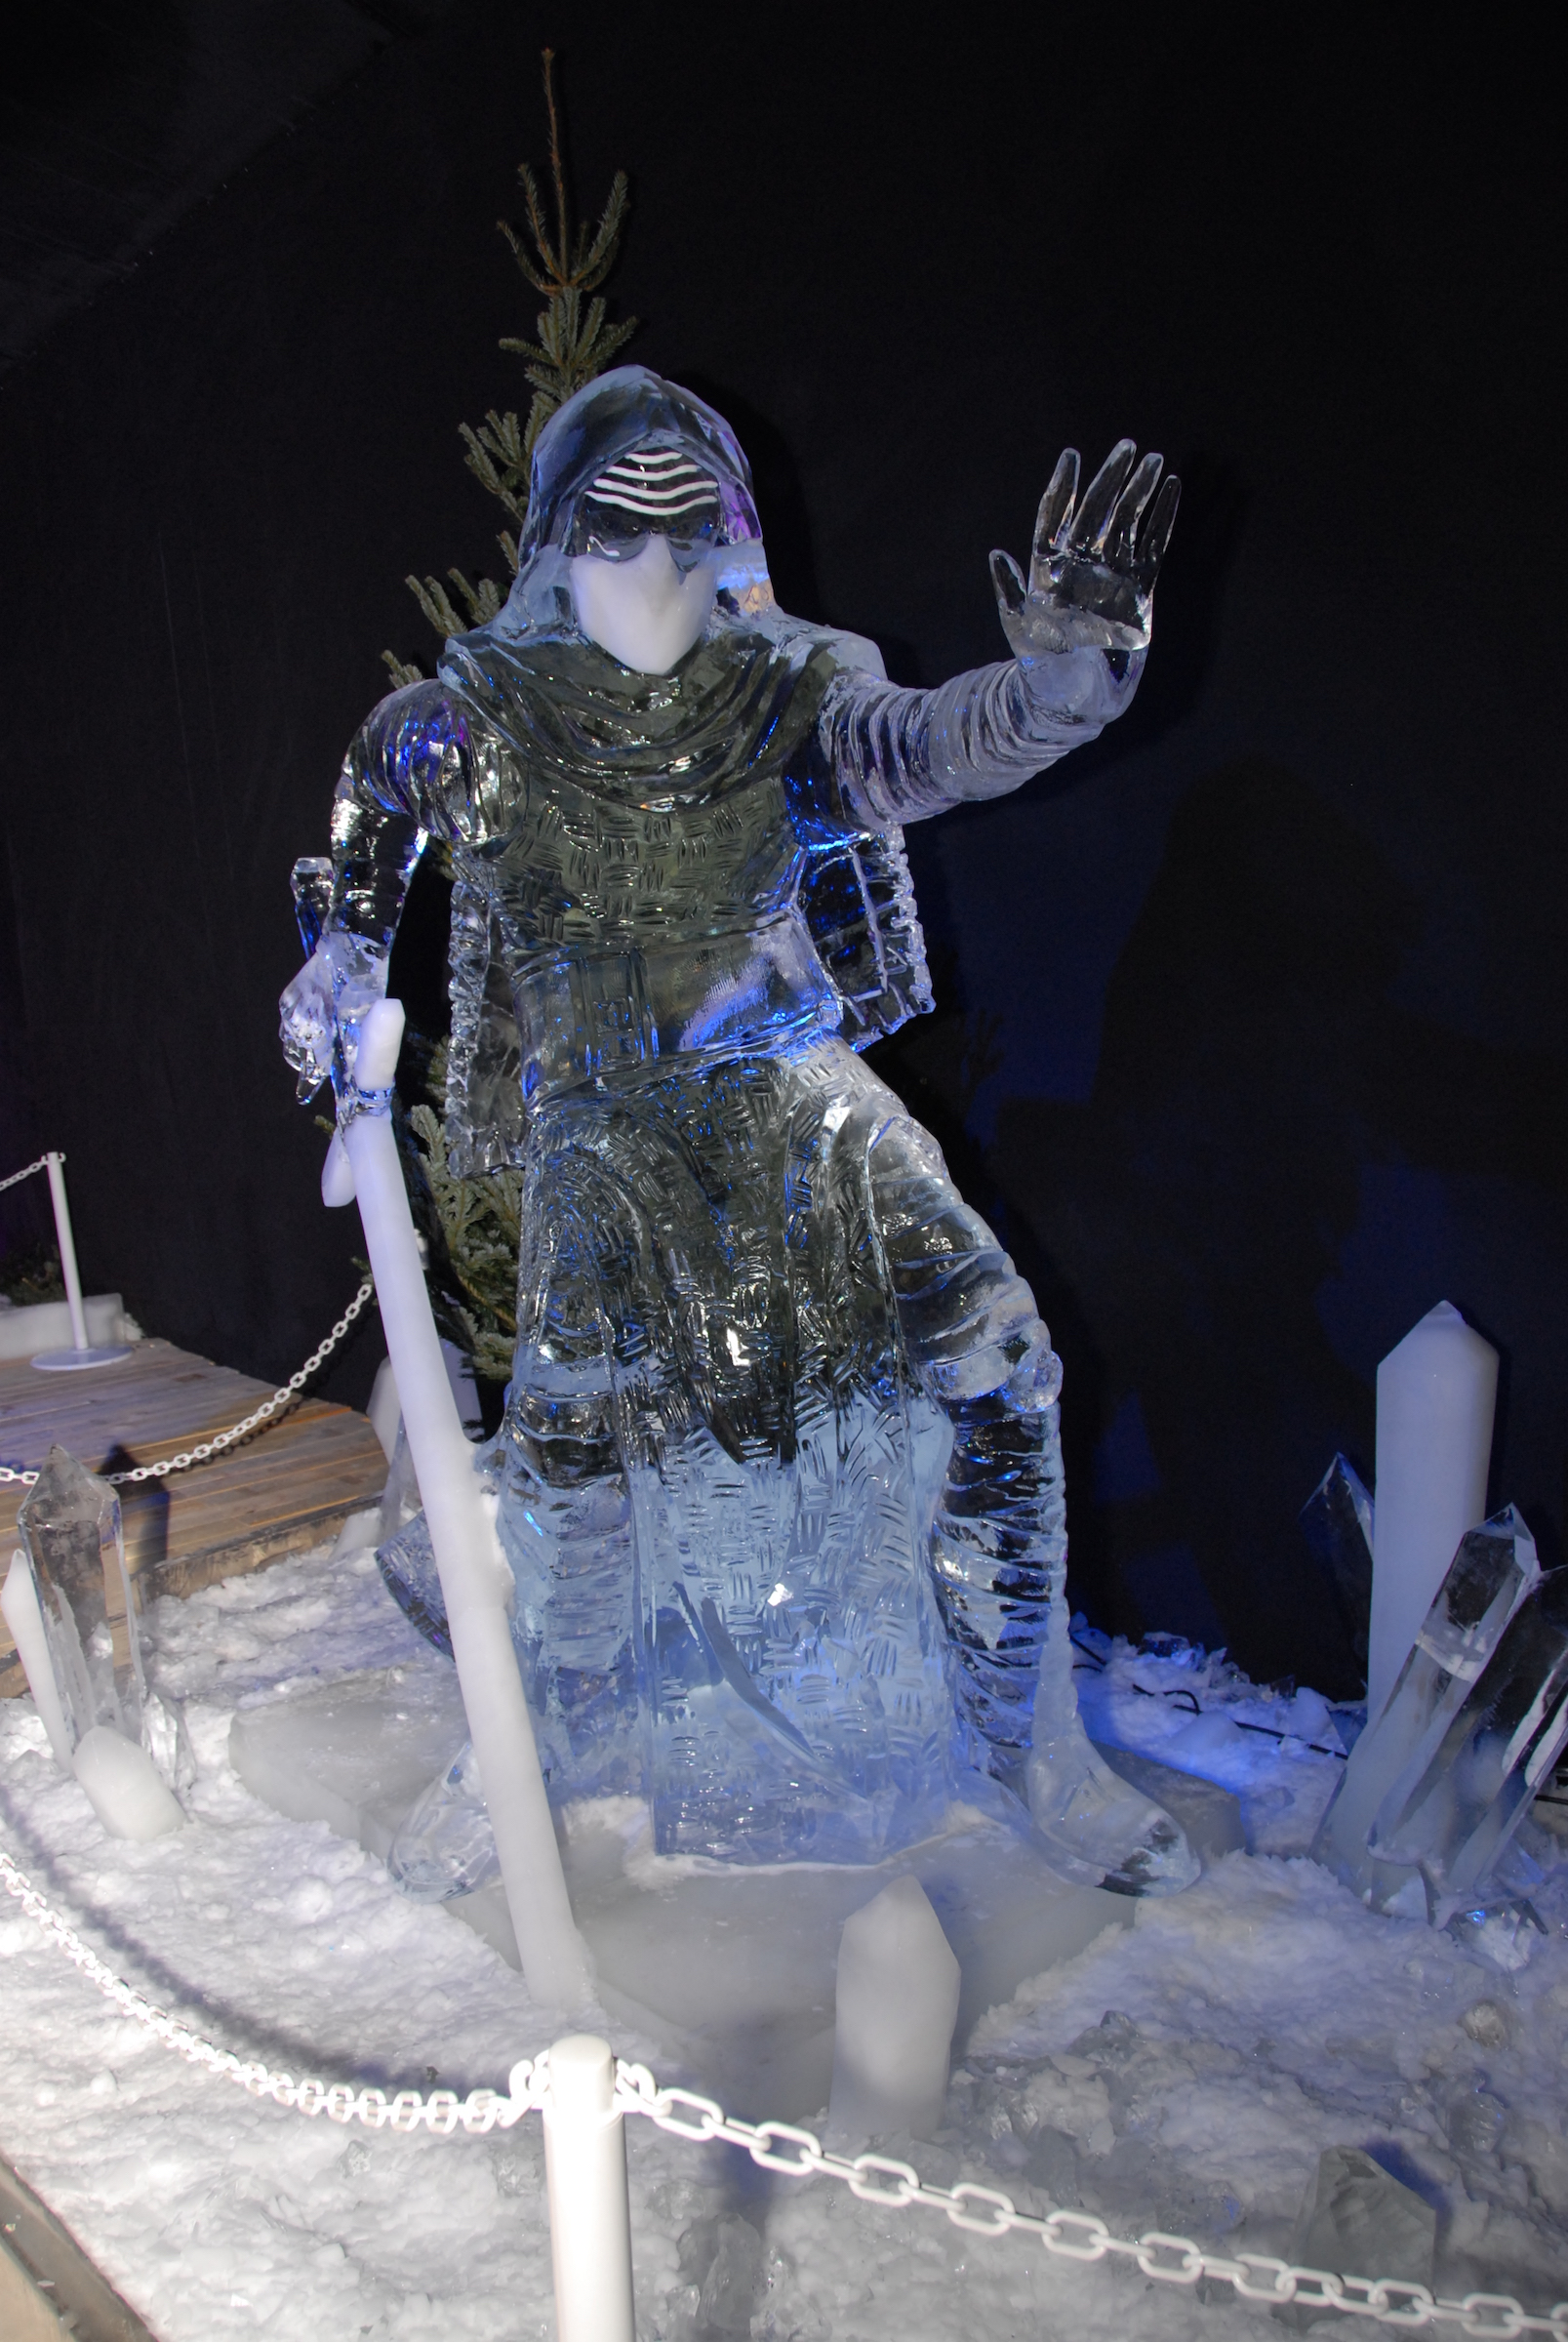 Star Wars Ice Sculptures Come to Belgium, and They're ...